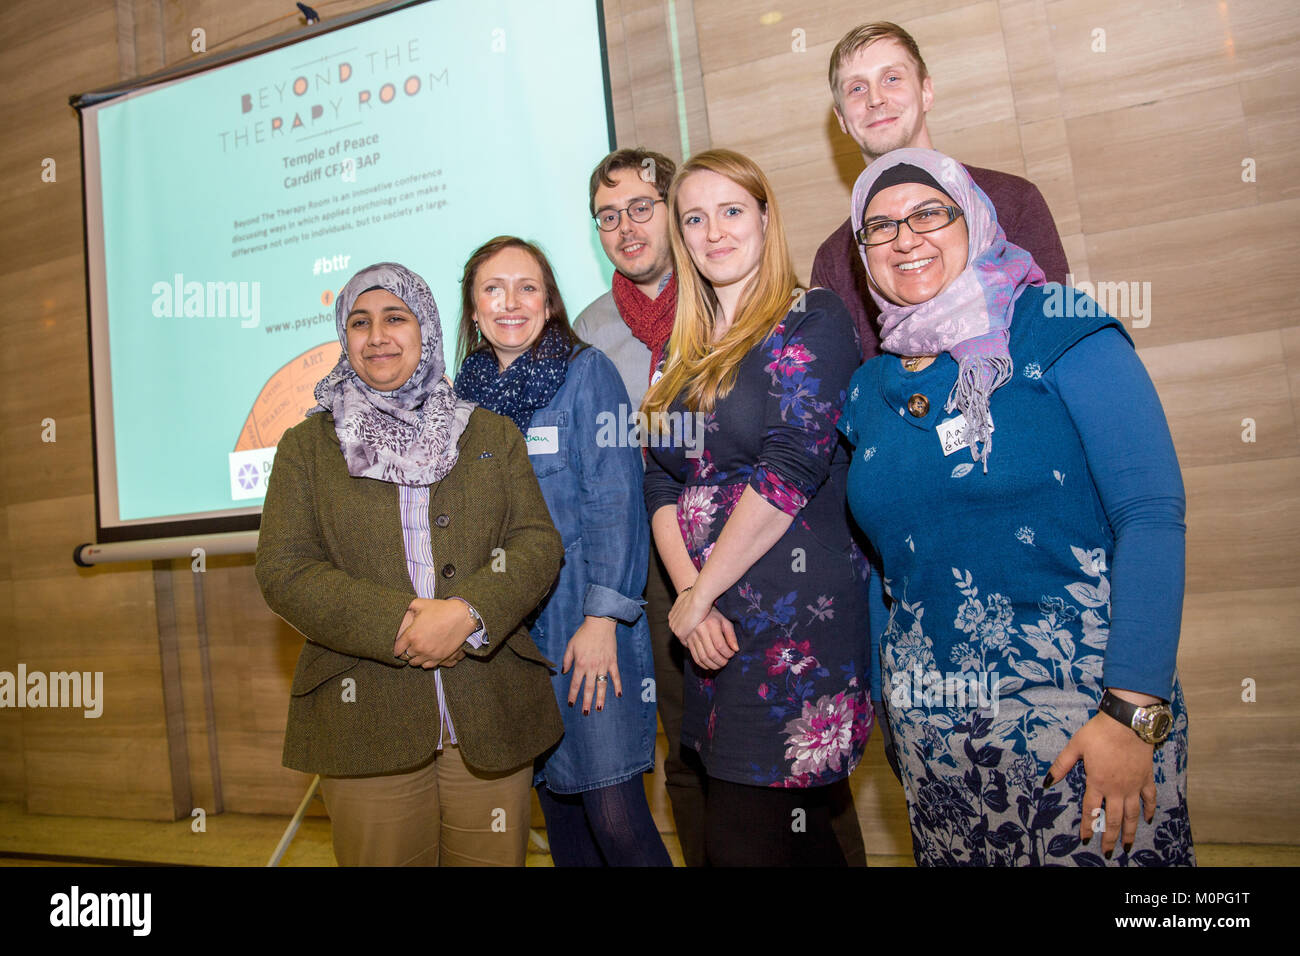 CARDIFF, UNITED KINGDOM.  19 January 2018.  Organisers of the Beyond the Thearapy Room pose for a group portrait. - Stock Image